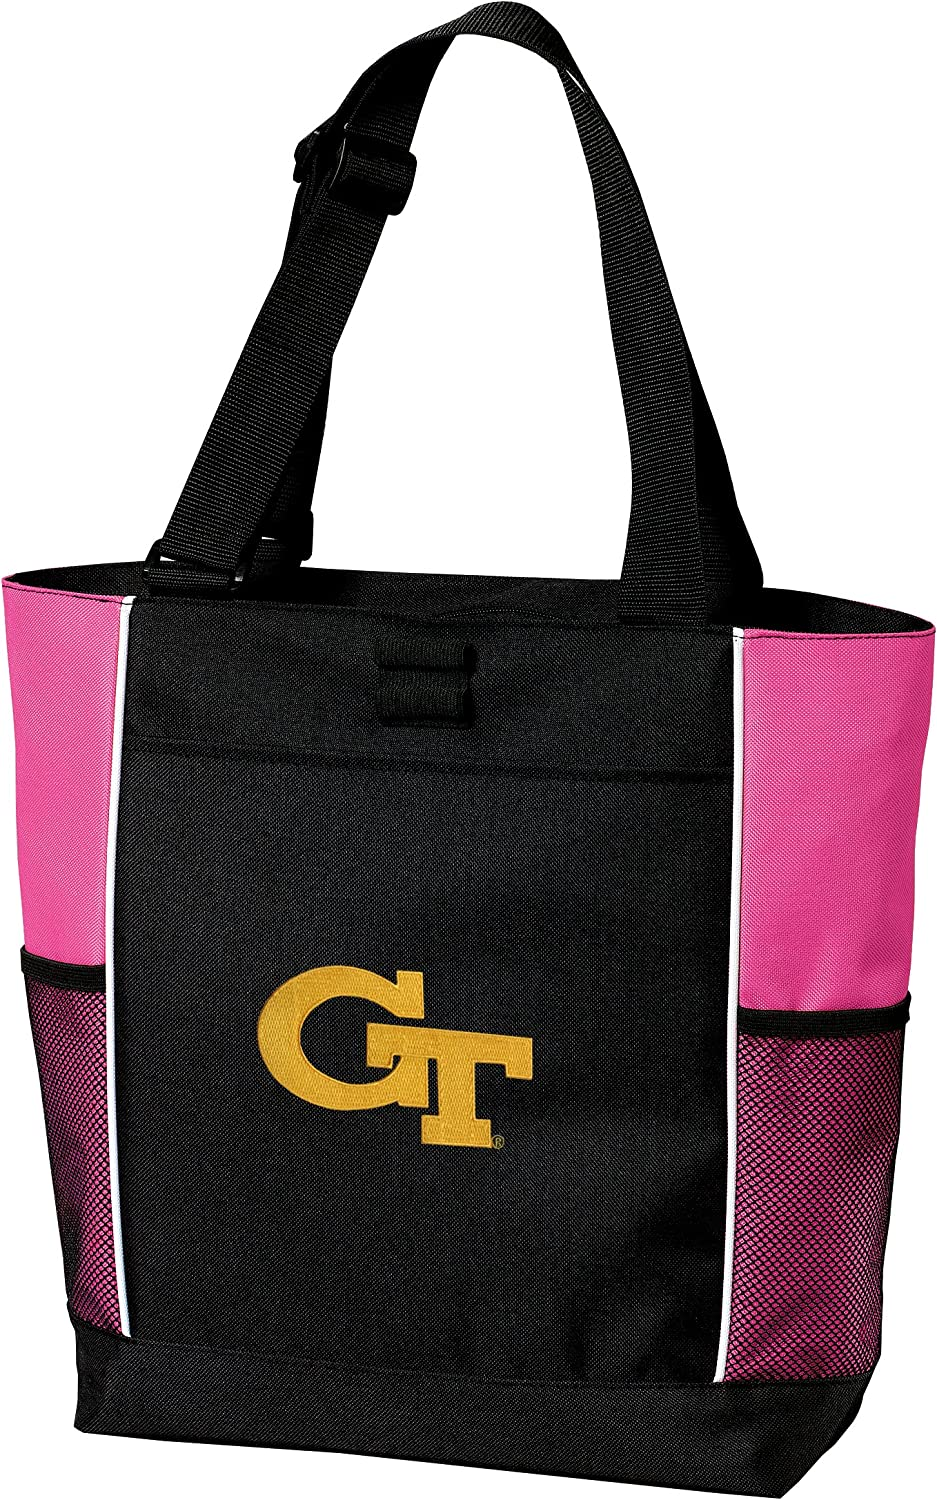 Georgia Tech Neon Pink Tote Bag Yellow Jackets HOT COLORS